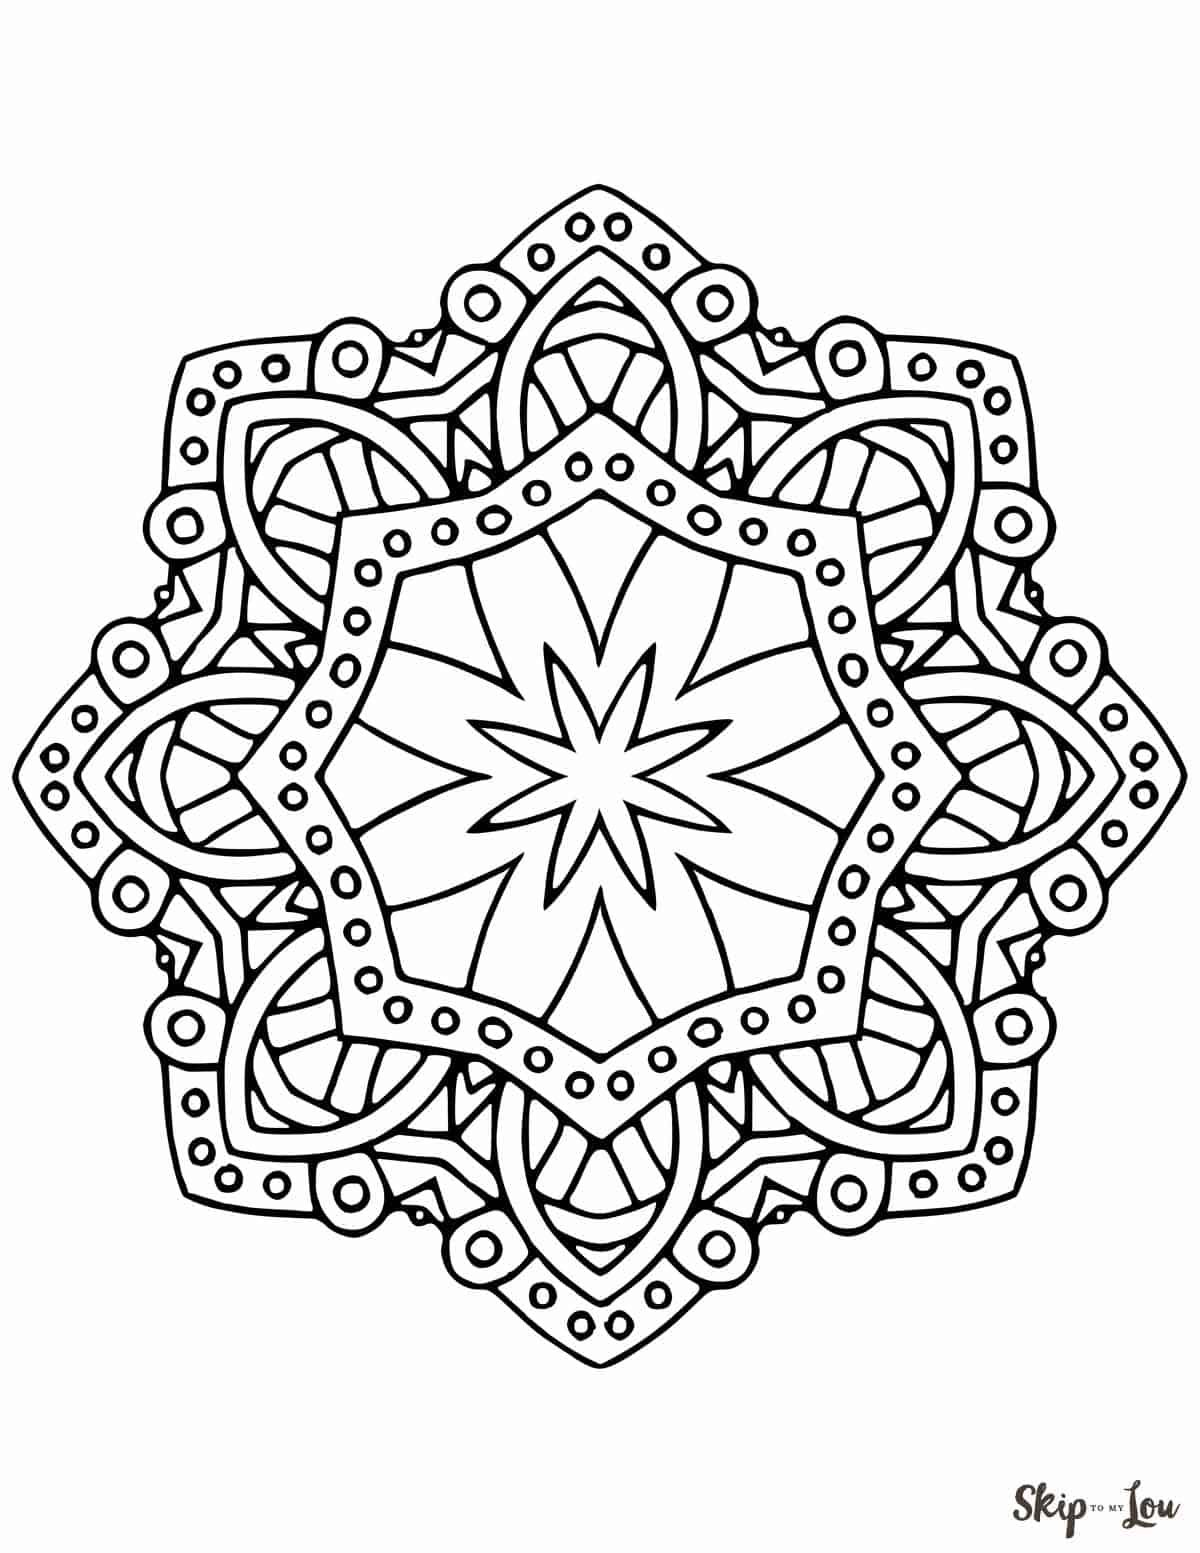 Beautiful Free Mandala Coloring Pages In 2020 Mandala Coloring Pages Coloring Pages Mandala Coloring